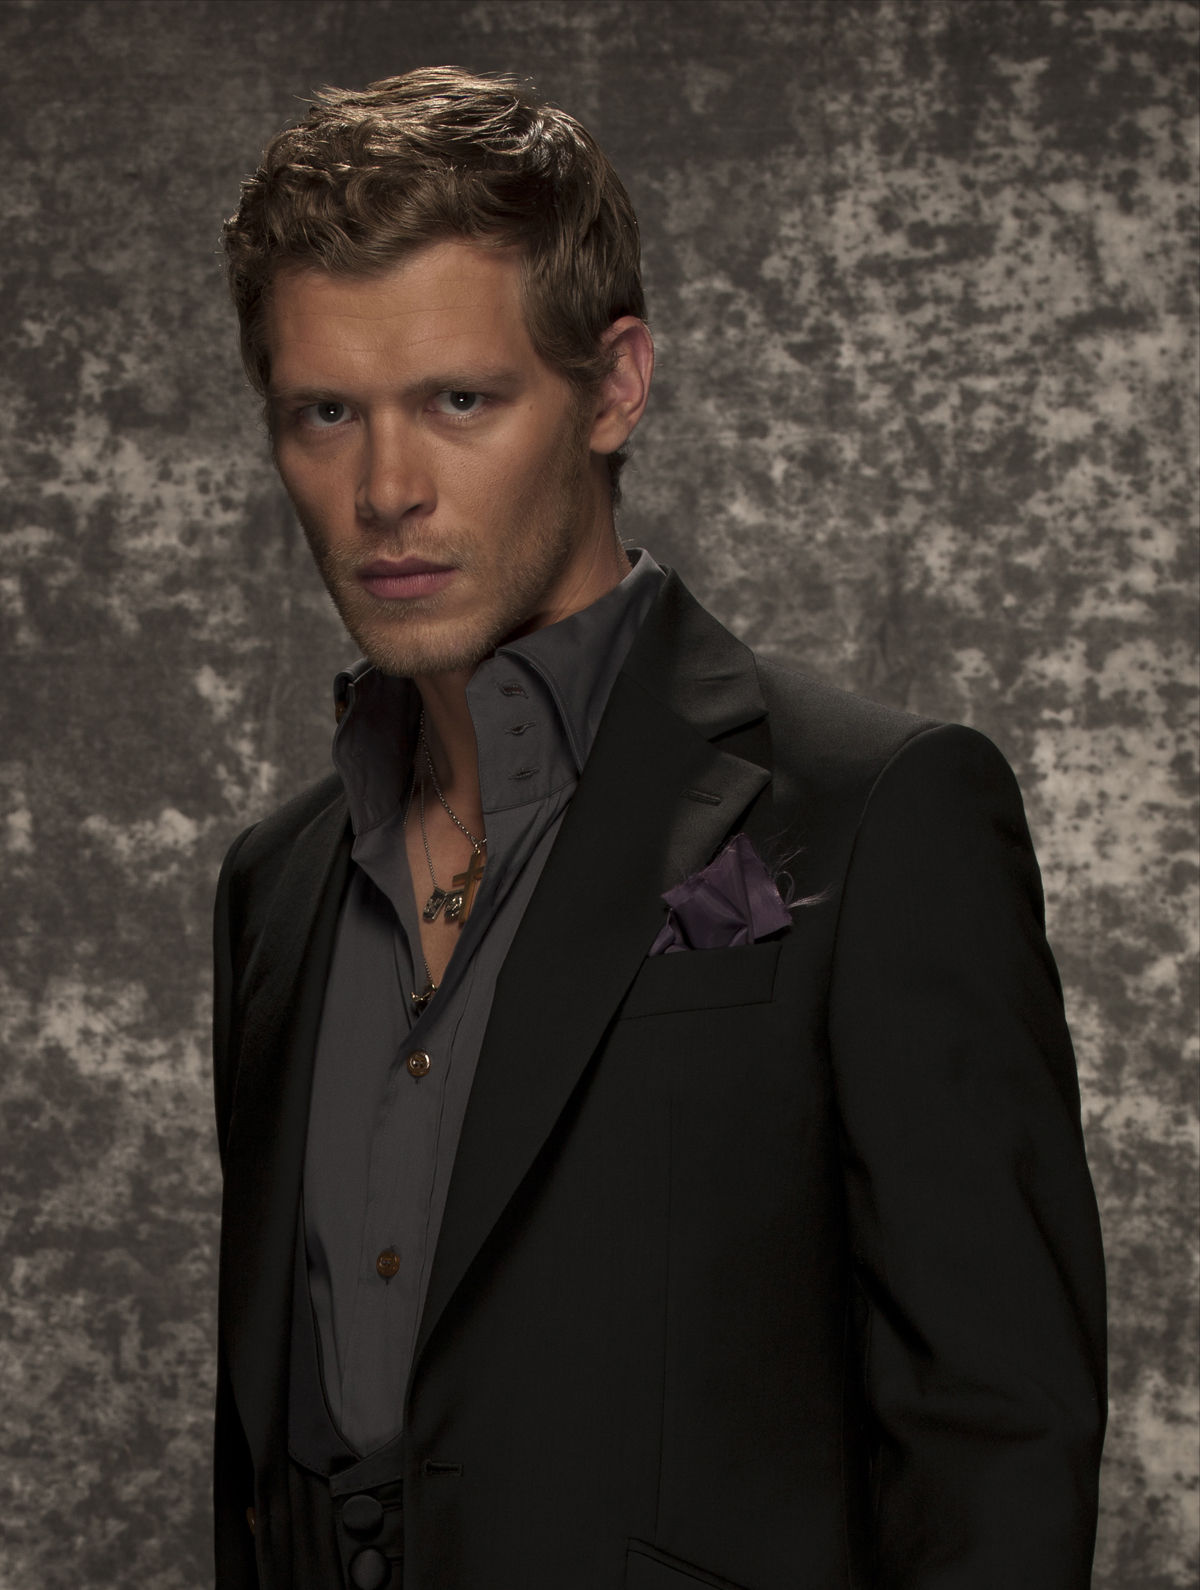 Joseph Morgan Actor Girlfriend http://www.cinemagia.ro/actori/joseph-morgan-88274/poze/1121730/